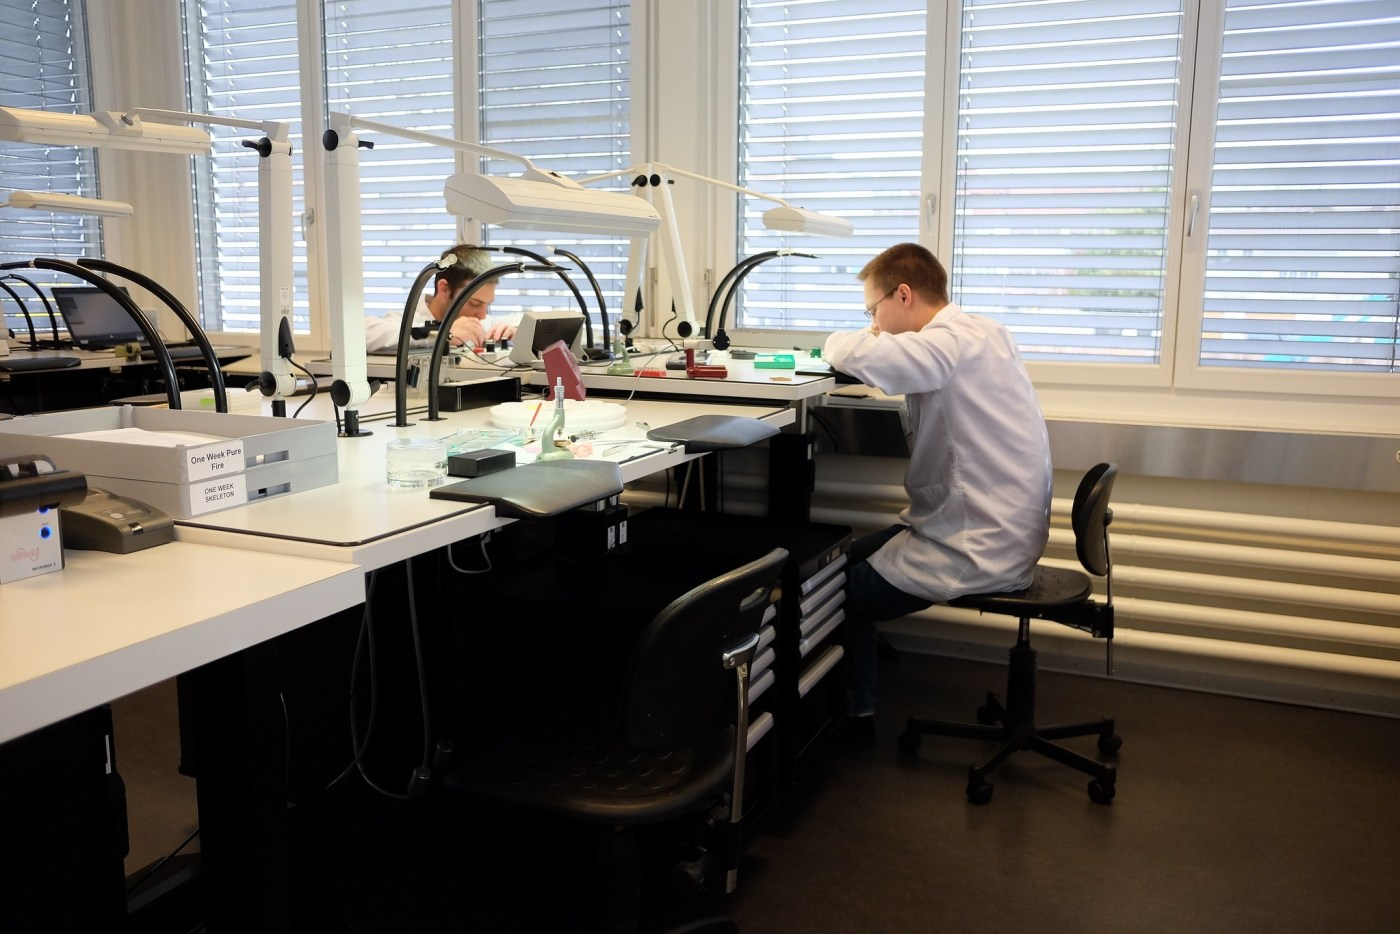 Watchmakers assembling and adjusting timepieces at Armin Strom